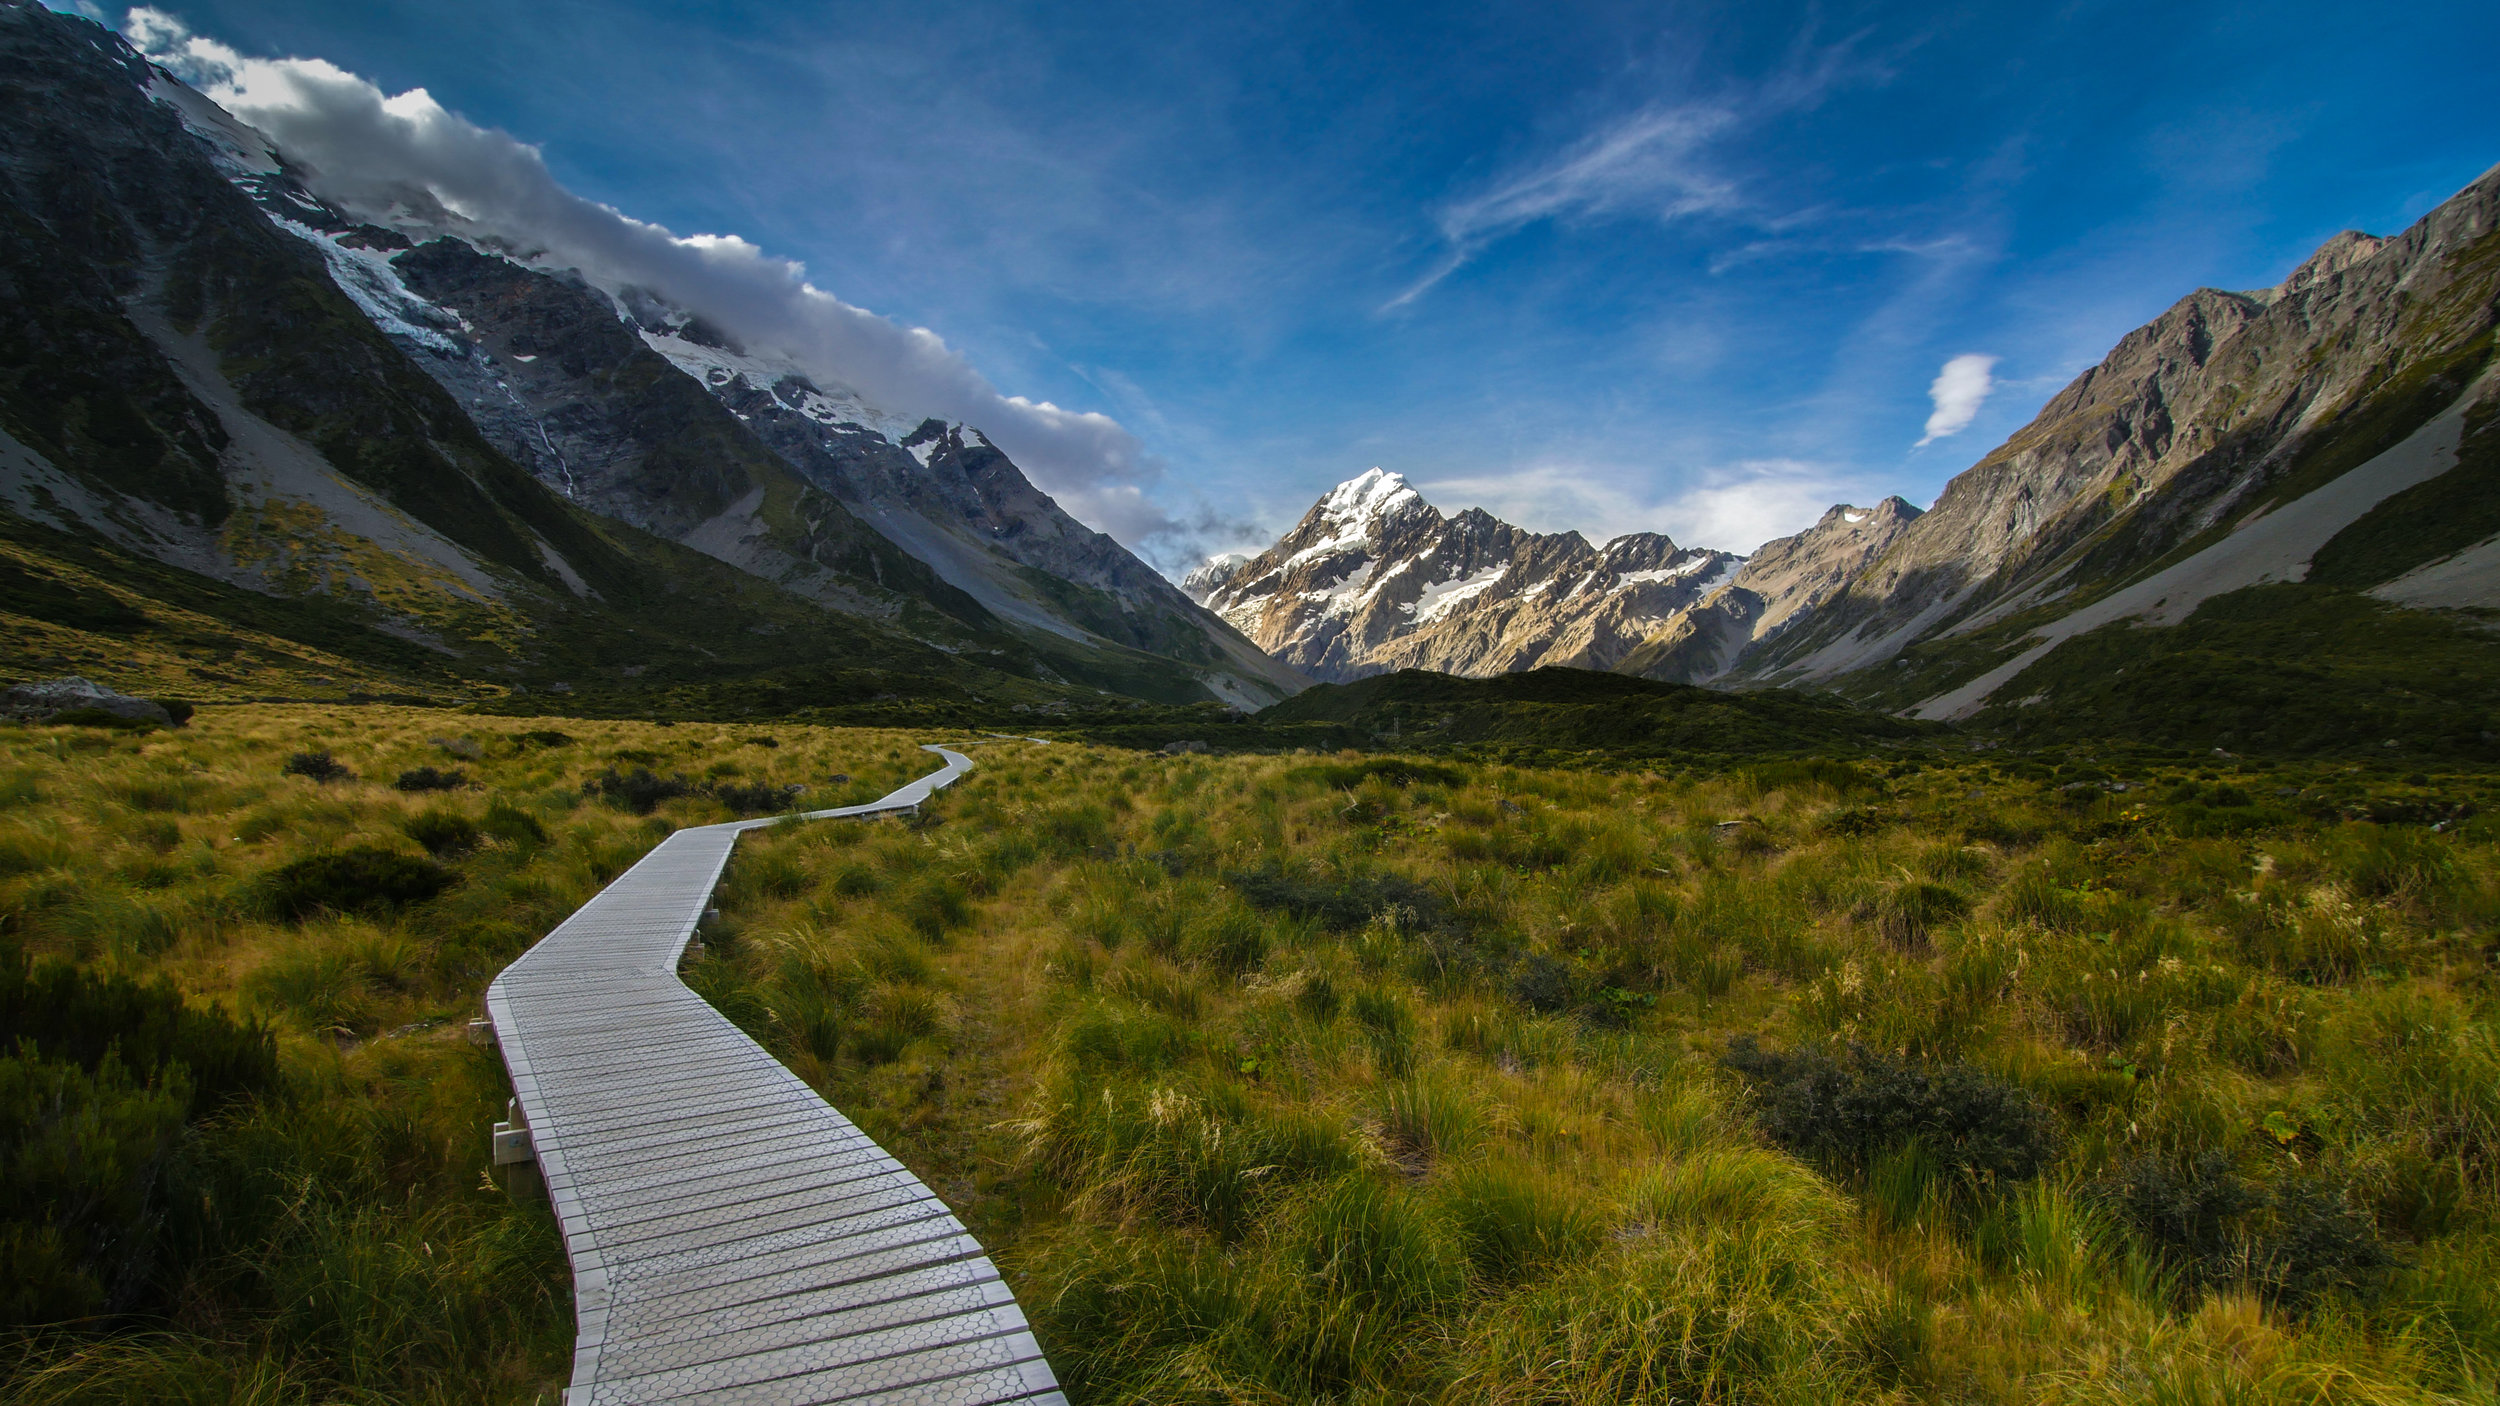 Mt Cook Hooker Valley Track Mount Cook New Zealand (2 of 6).jpg